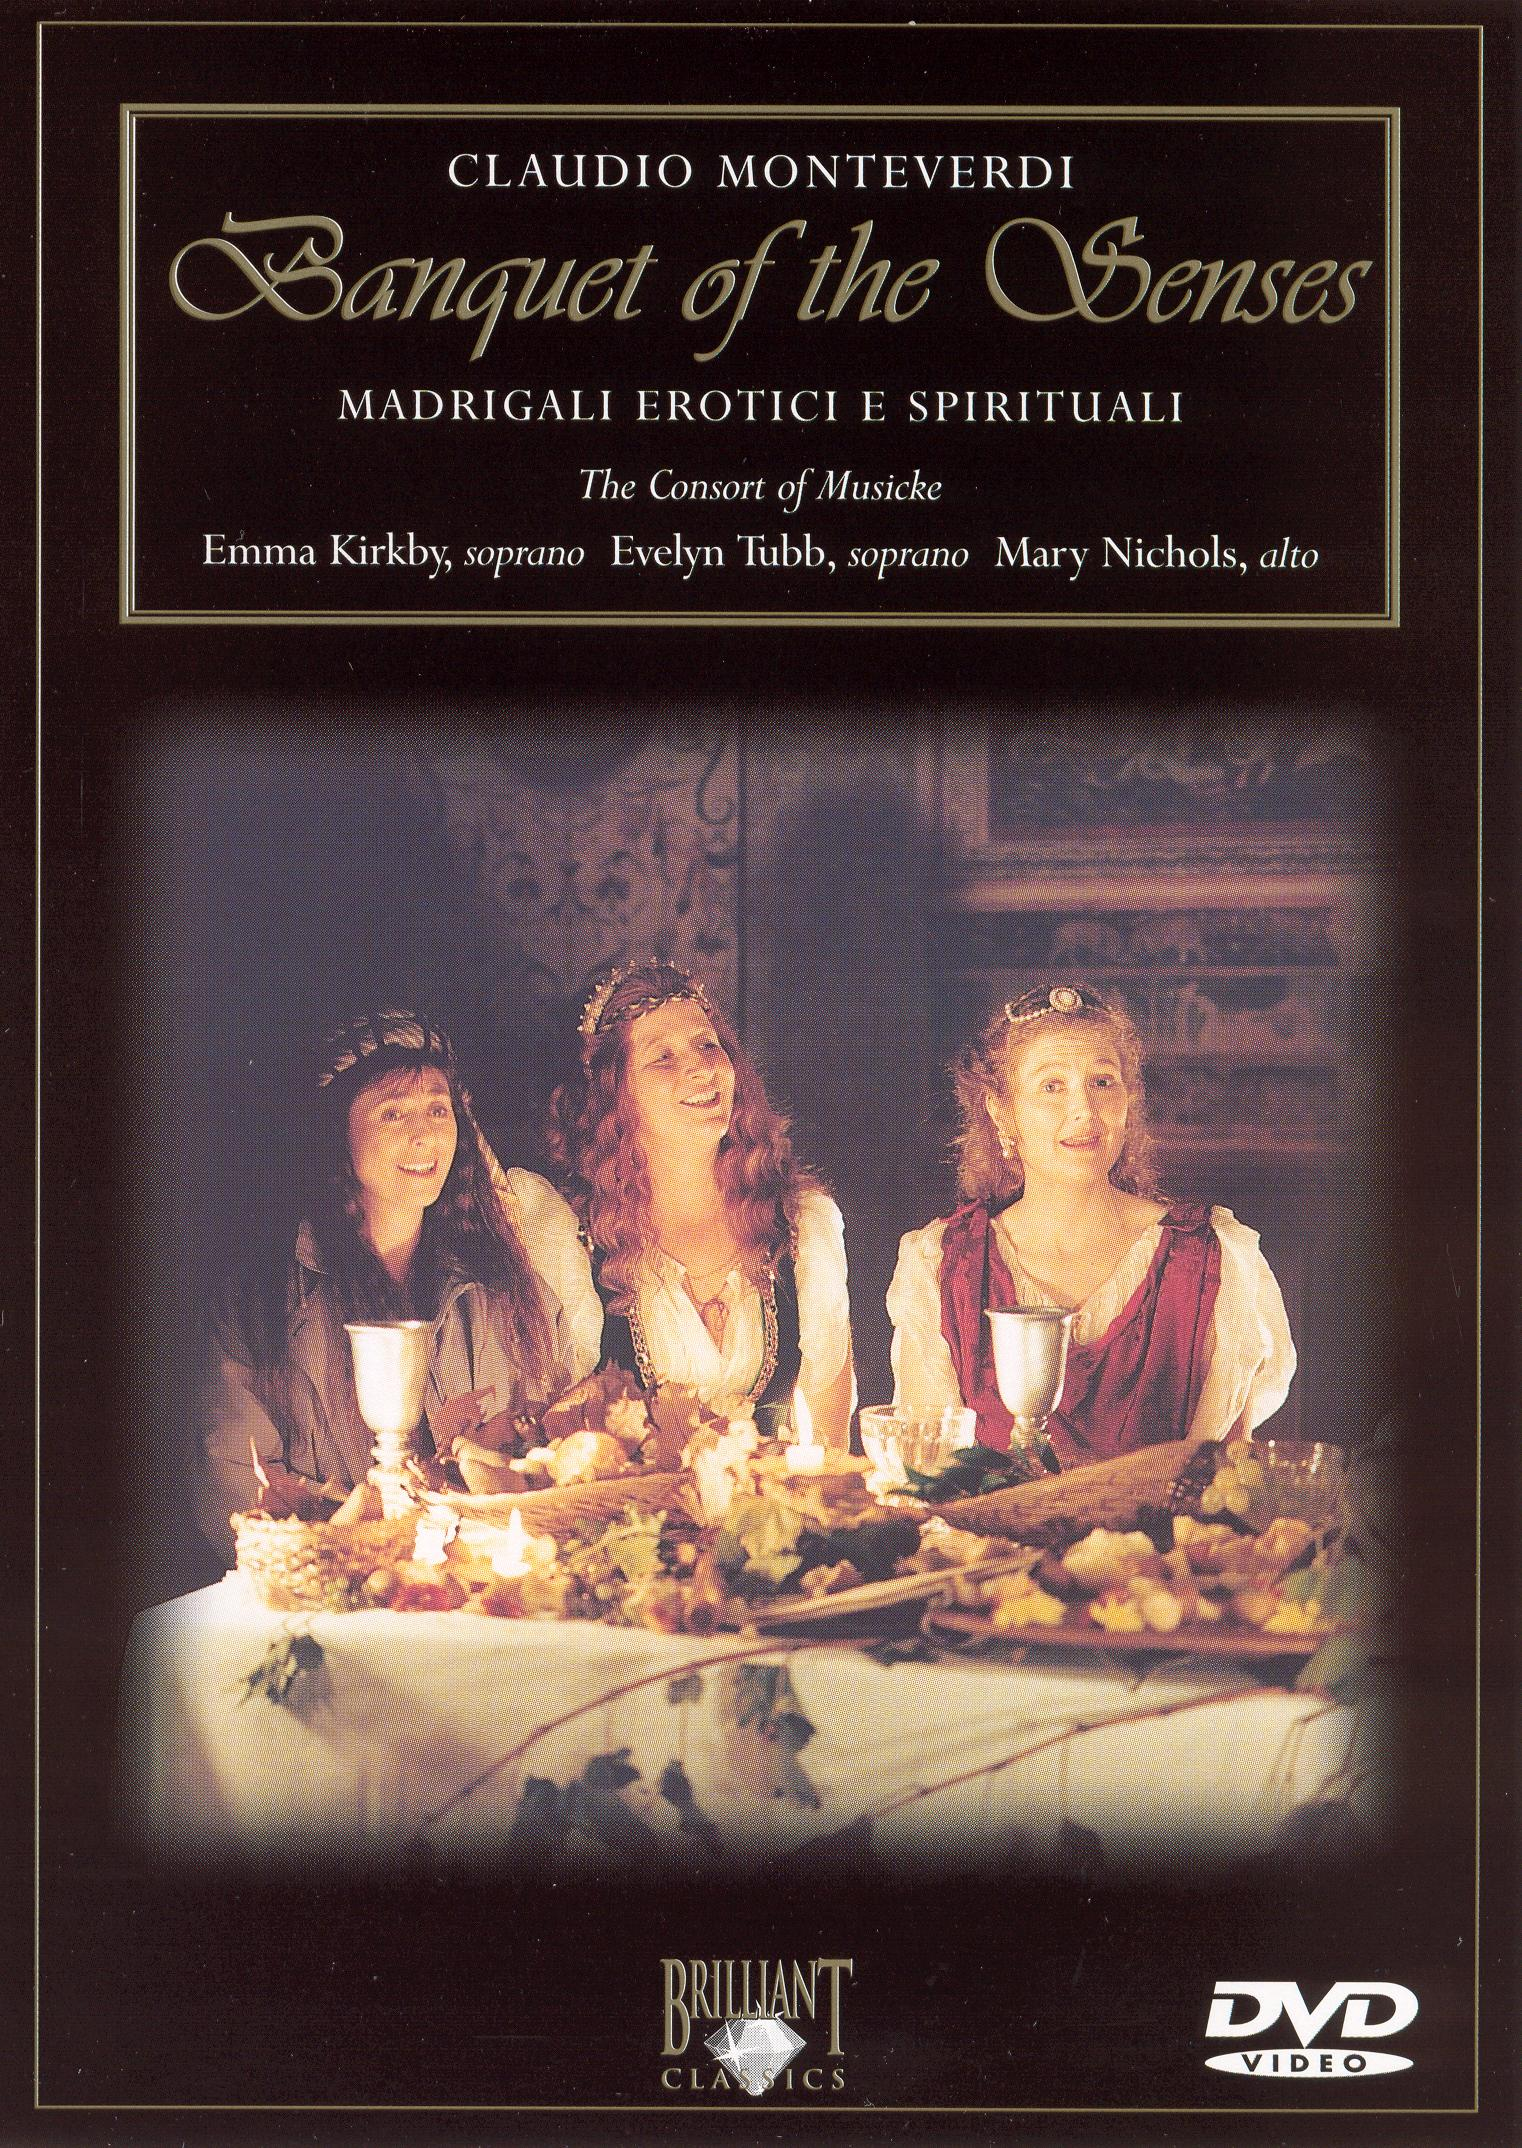 Banquet of the Senses: Madragli Erotici e Spirituali